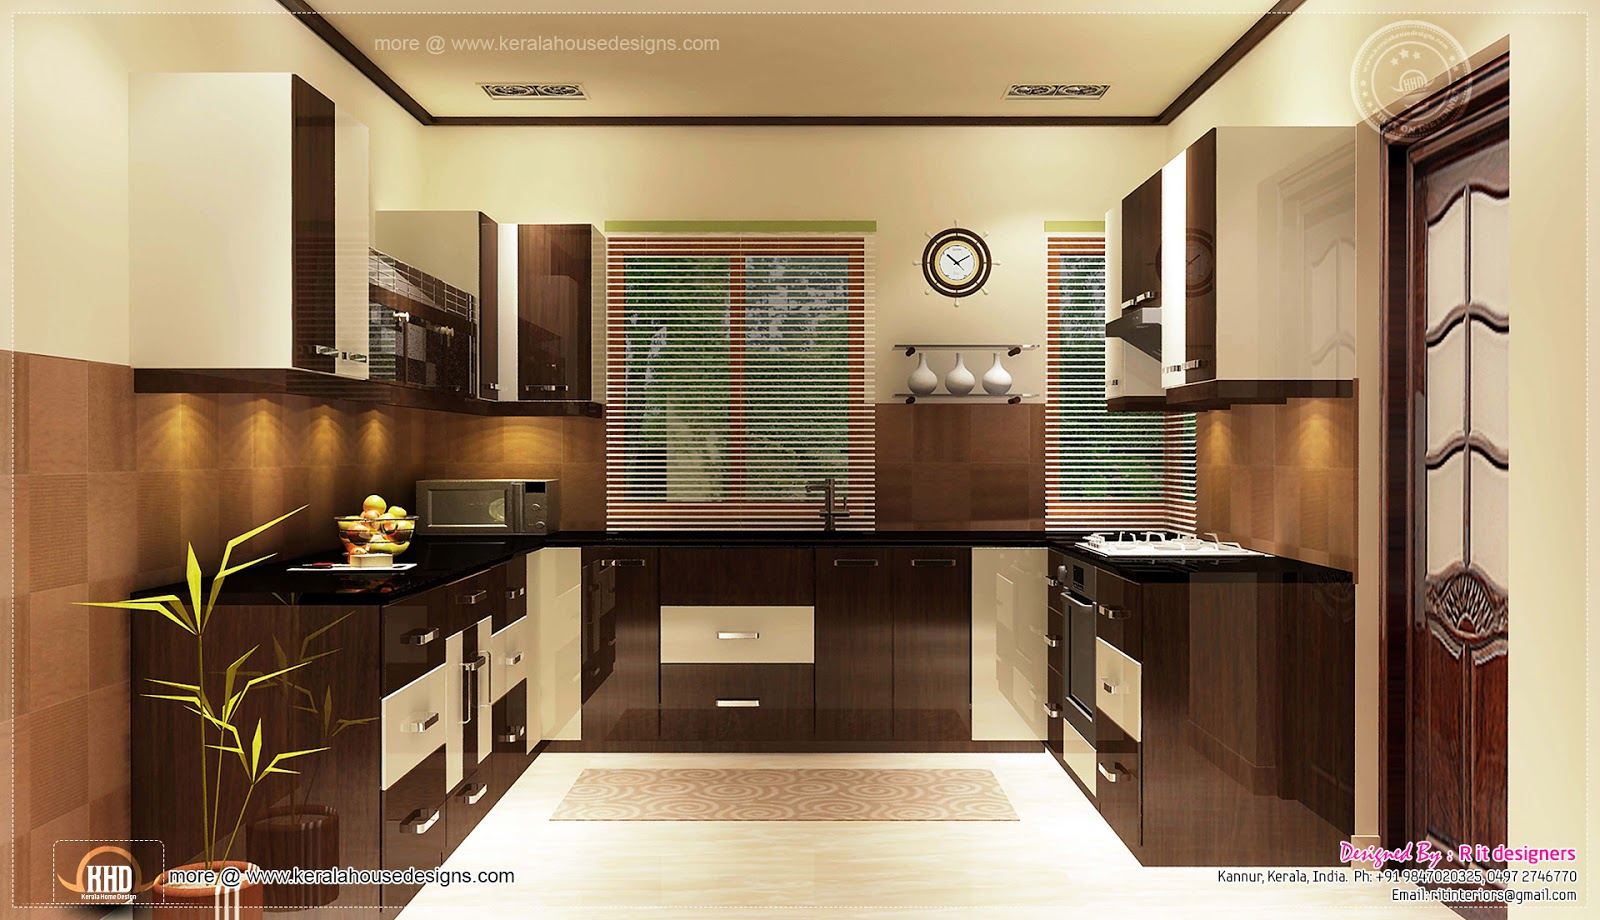 Home interior designs by rit designers kerala home for Inside home design pictures